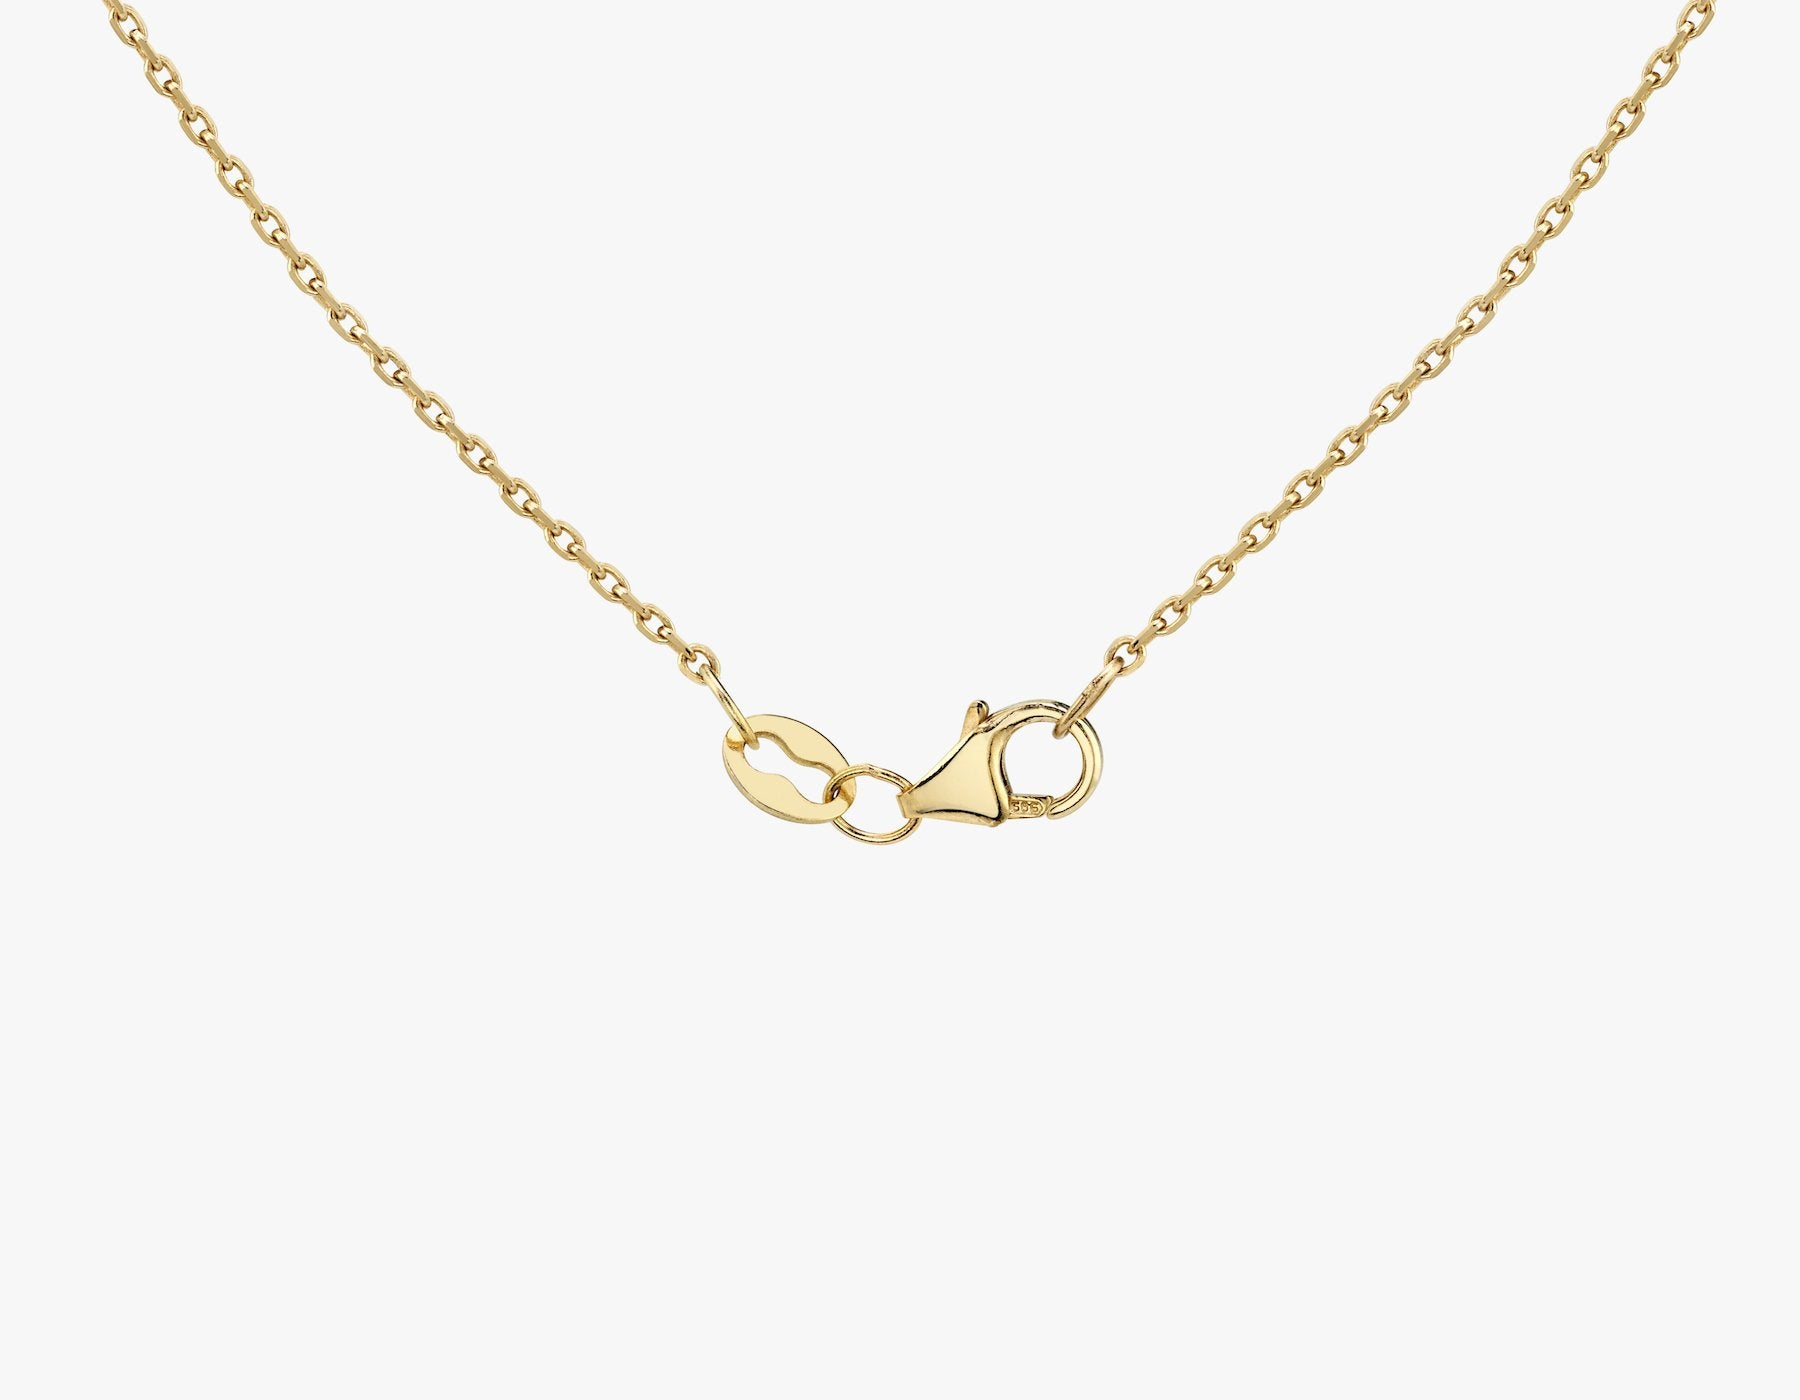 Vrai necklace clasp, 14K Yellow Gold